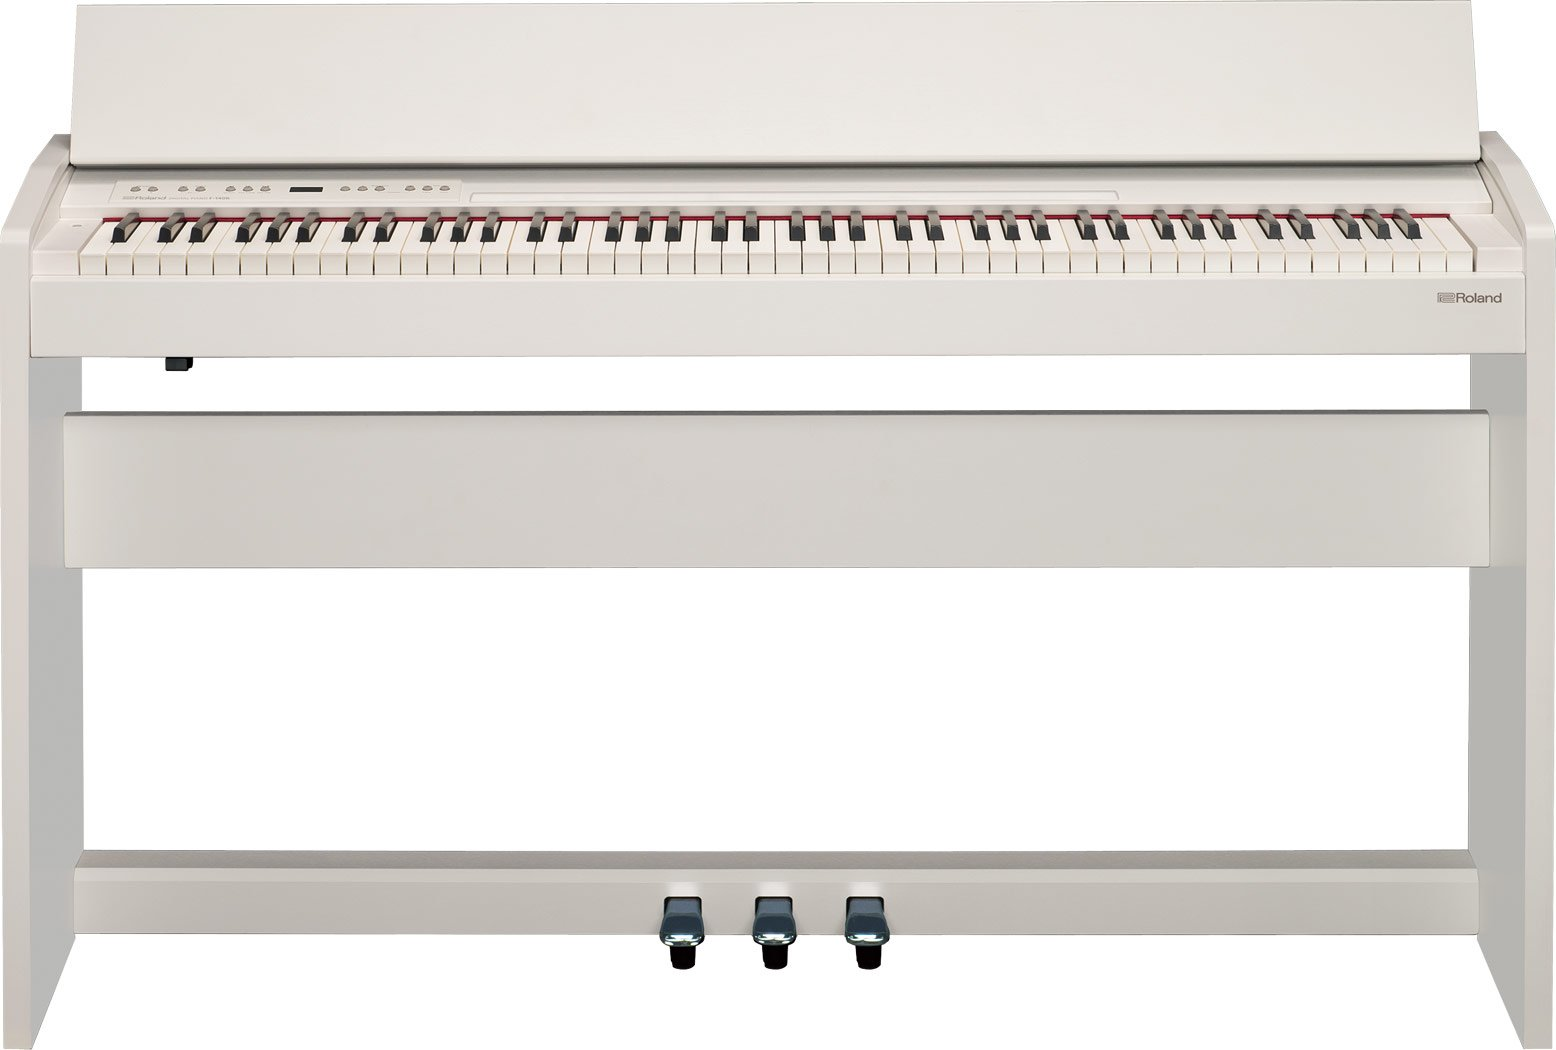 Roland Compact 88-key Digital Piano with Built-In Speaker, white (F-140R-WH) by Roland